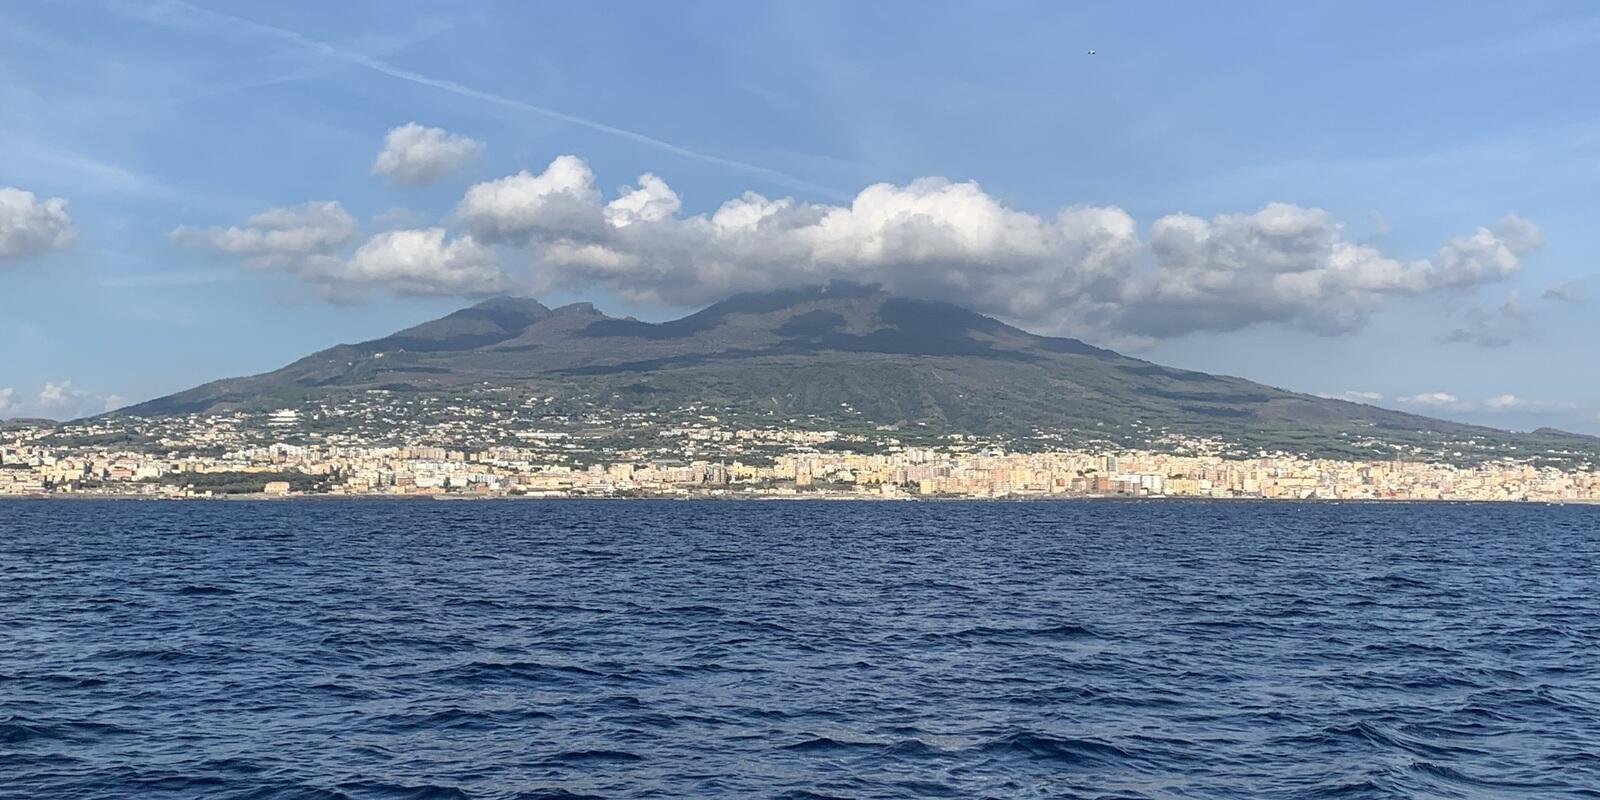 DAILY EXCURSION IN THE GULF OF NAPLES